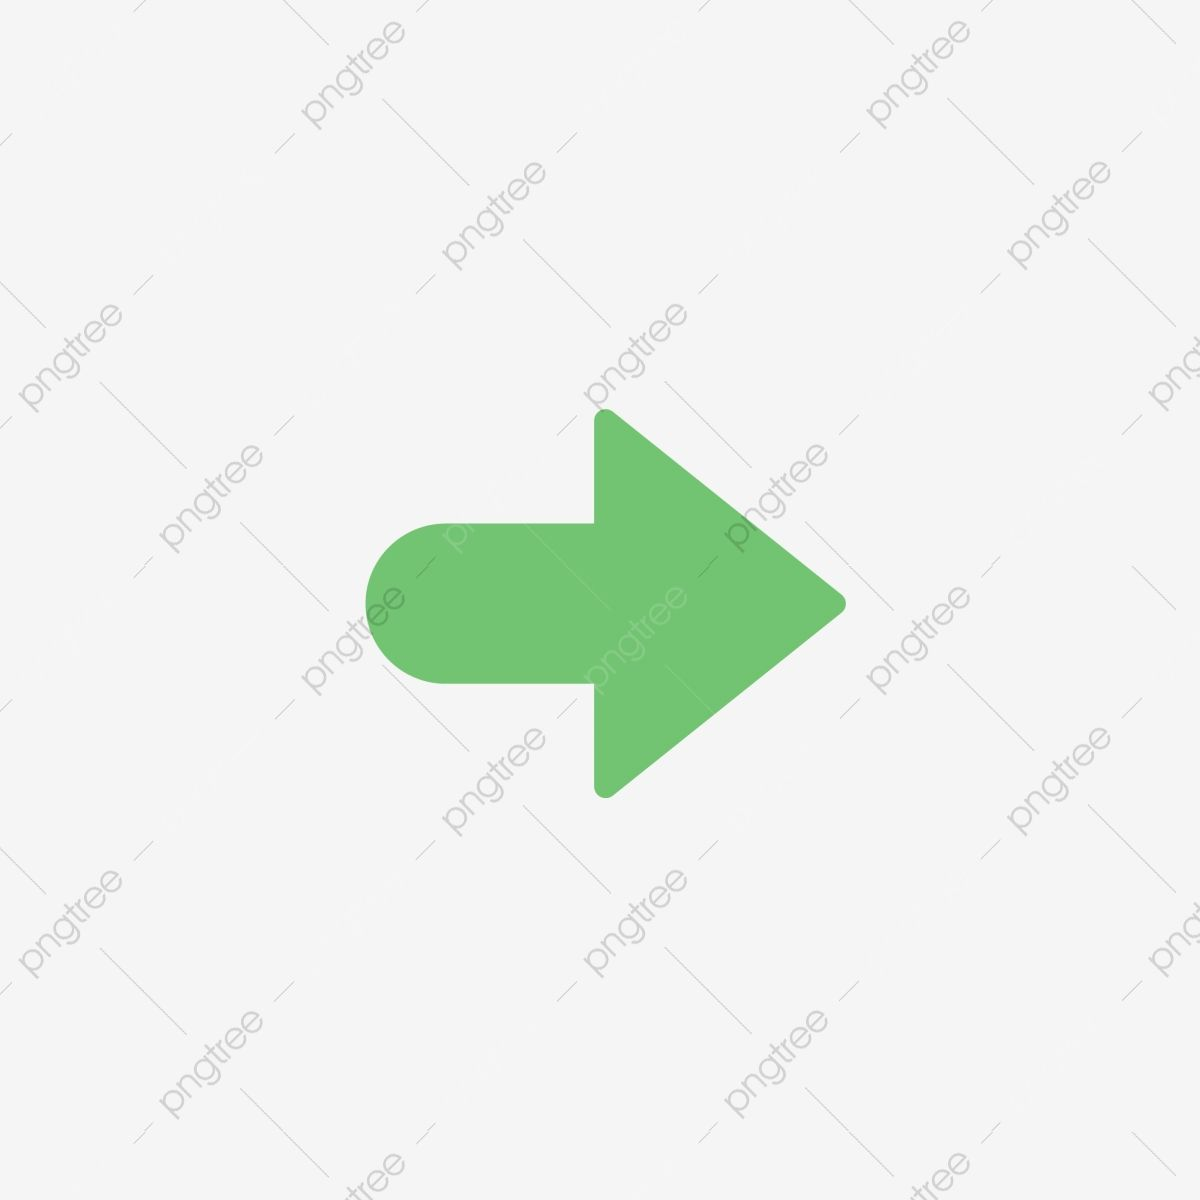 Right Arrow Number Free Map Green Arrow Web Icon Arrow Number Png And Vector With Transparent Background For Free Download Web Icons Right Arrow Symbol Free Maps